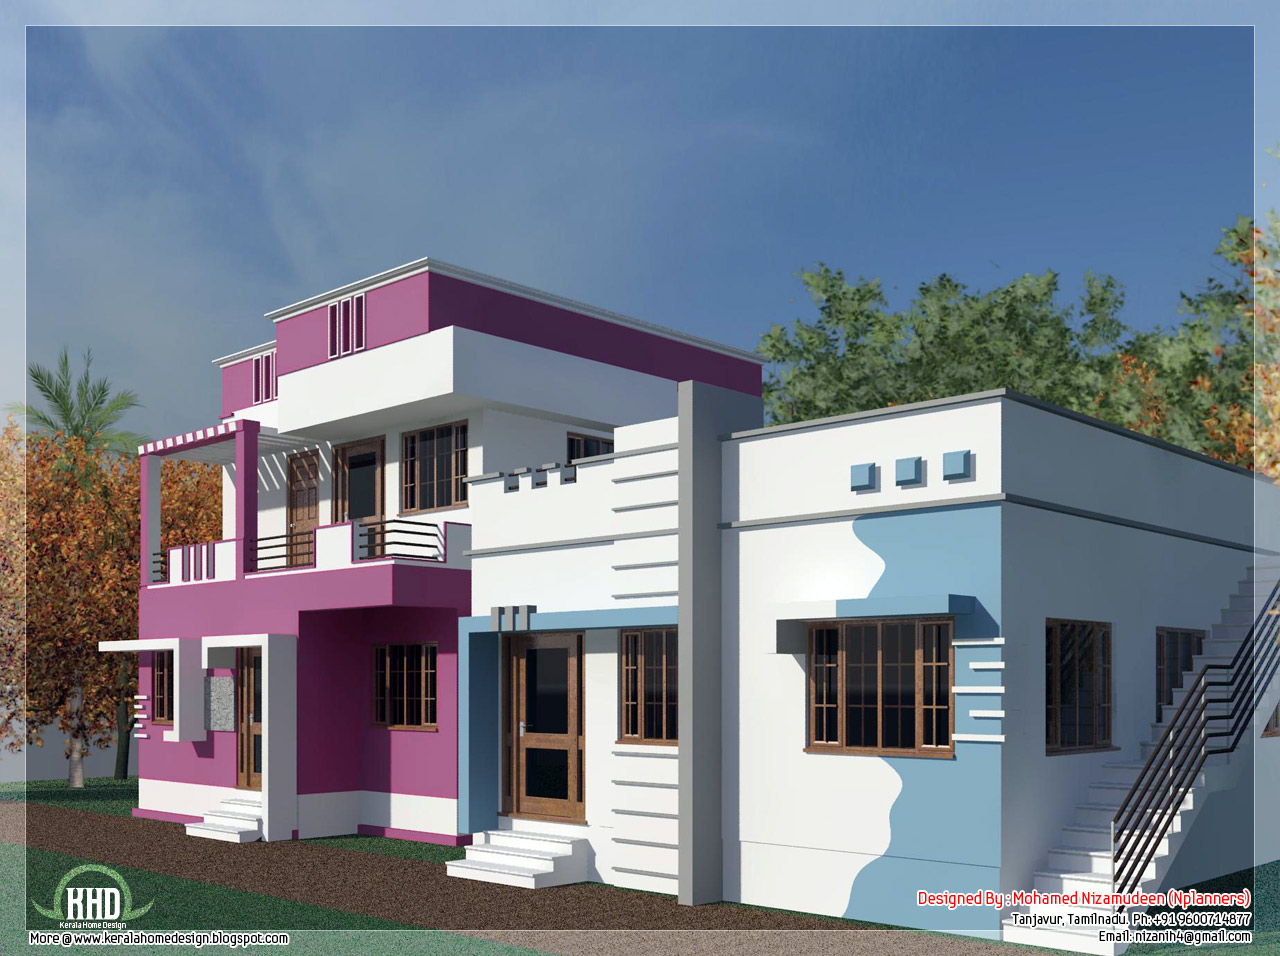 Tamilnadu model home design in 3000 kerala home for Traditional house designs in tamilnadu